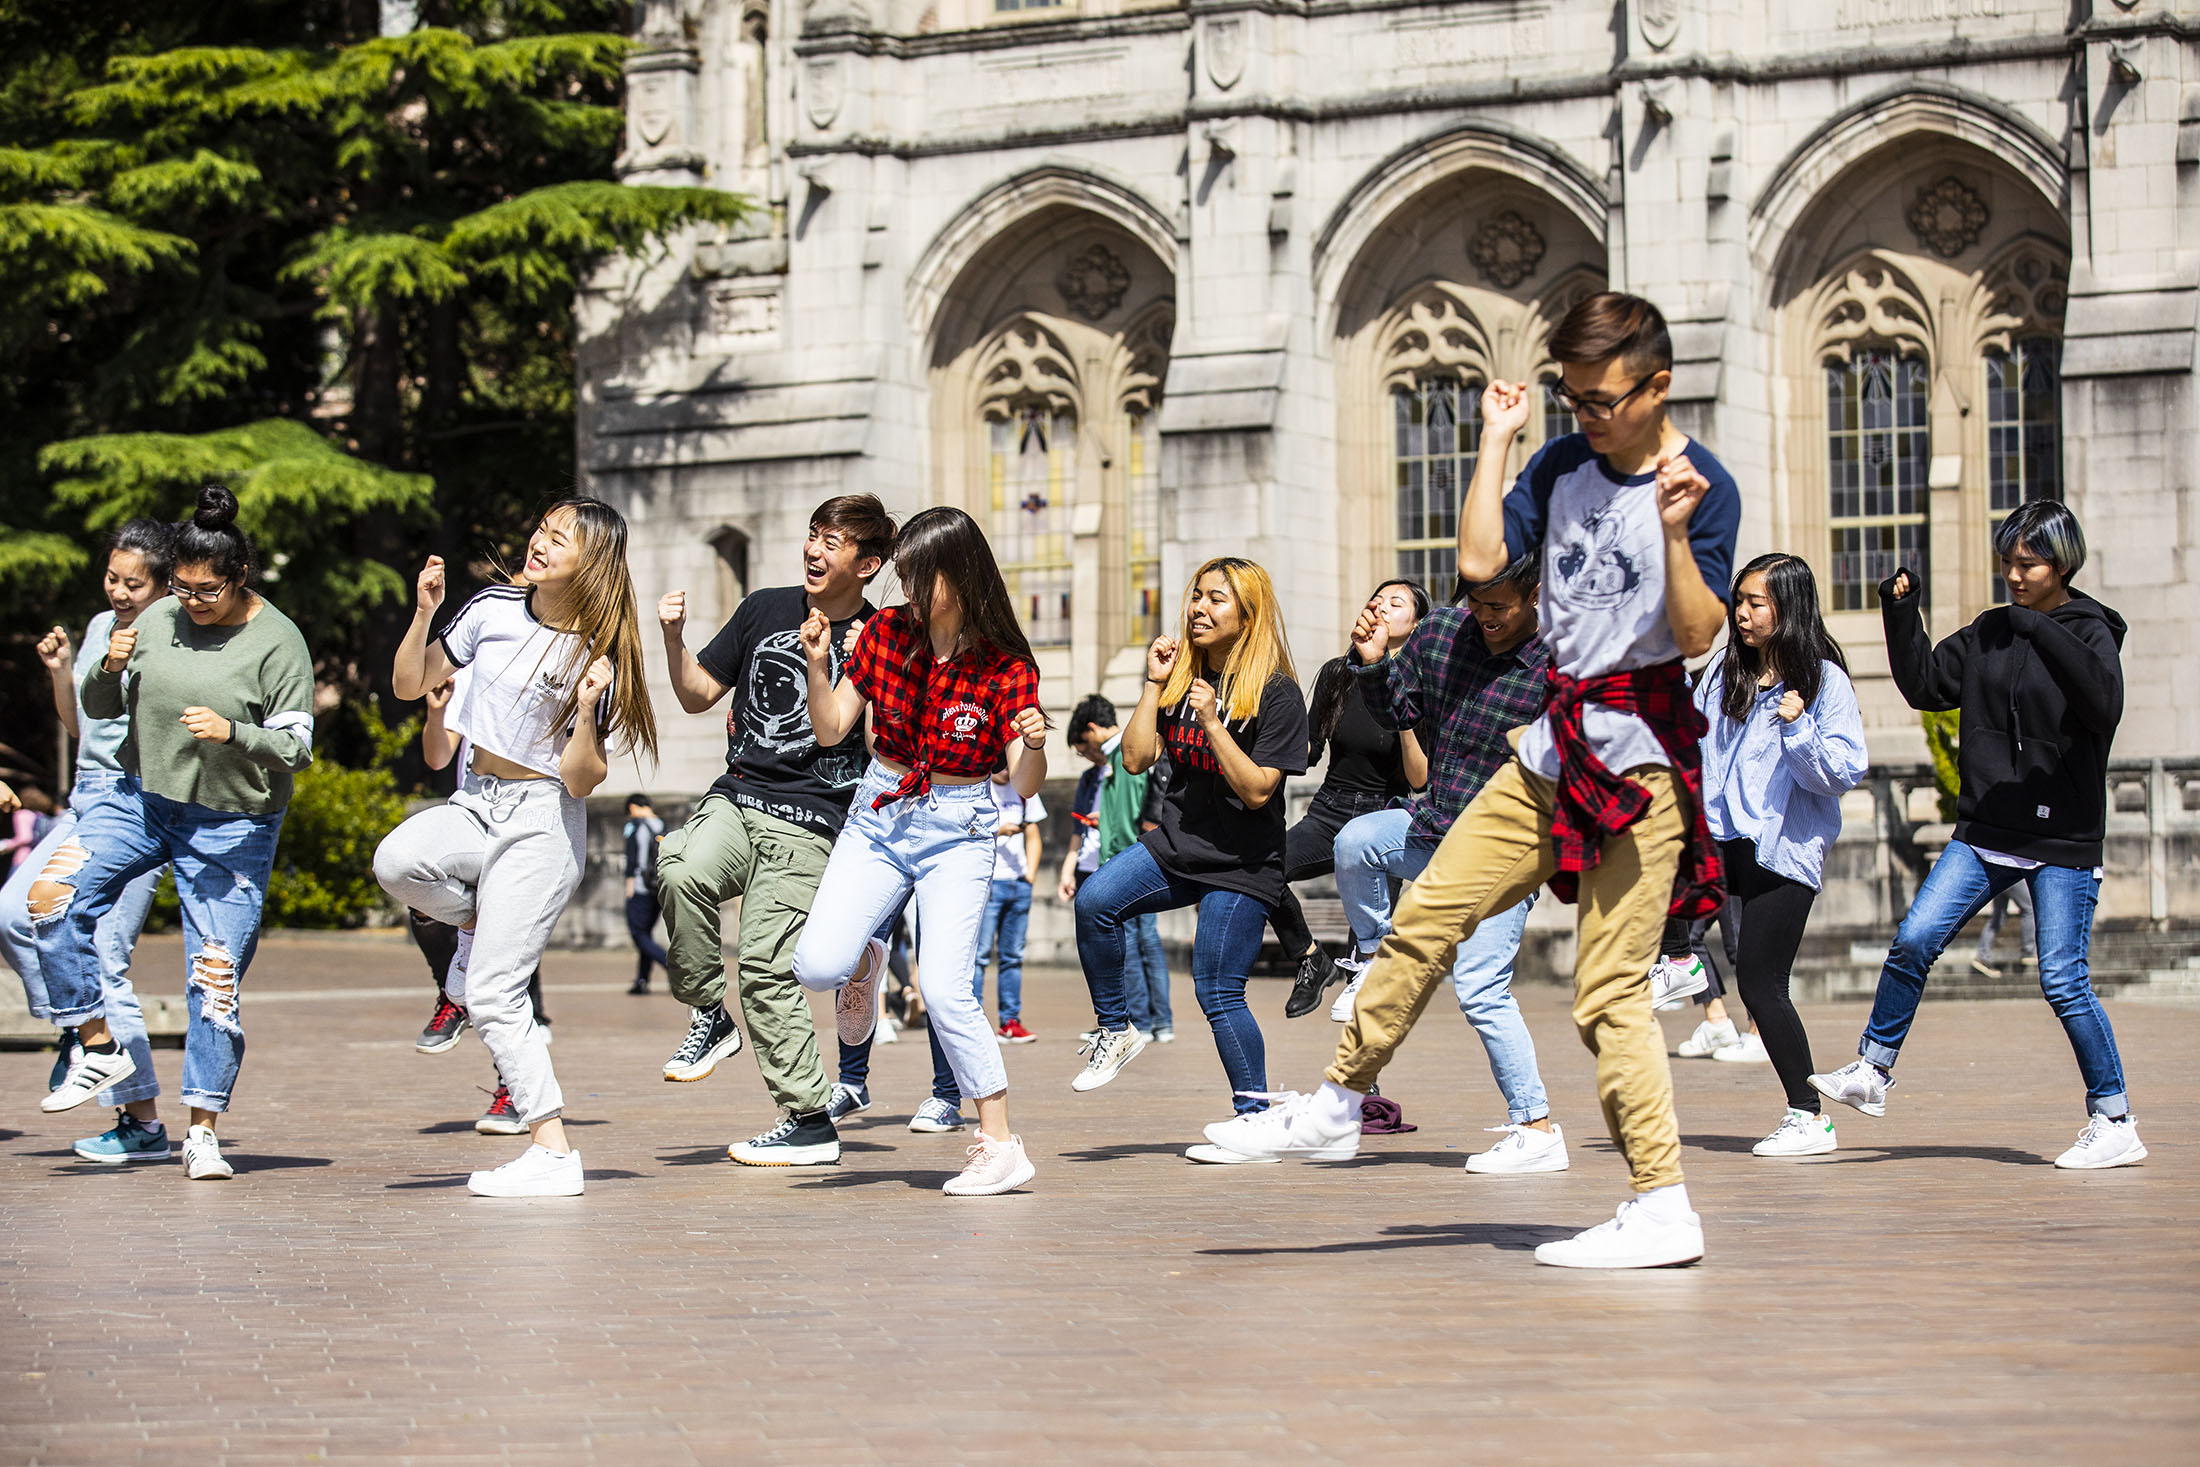 STUDENT CLUBS, BTS joined student K-pop dance group THE KOMPANY to perform on Red Square. You never know what fun you'll find in a student club!